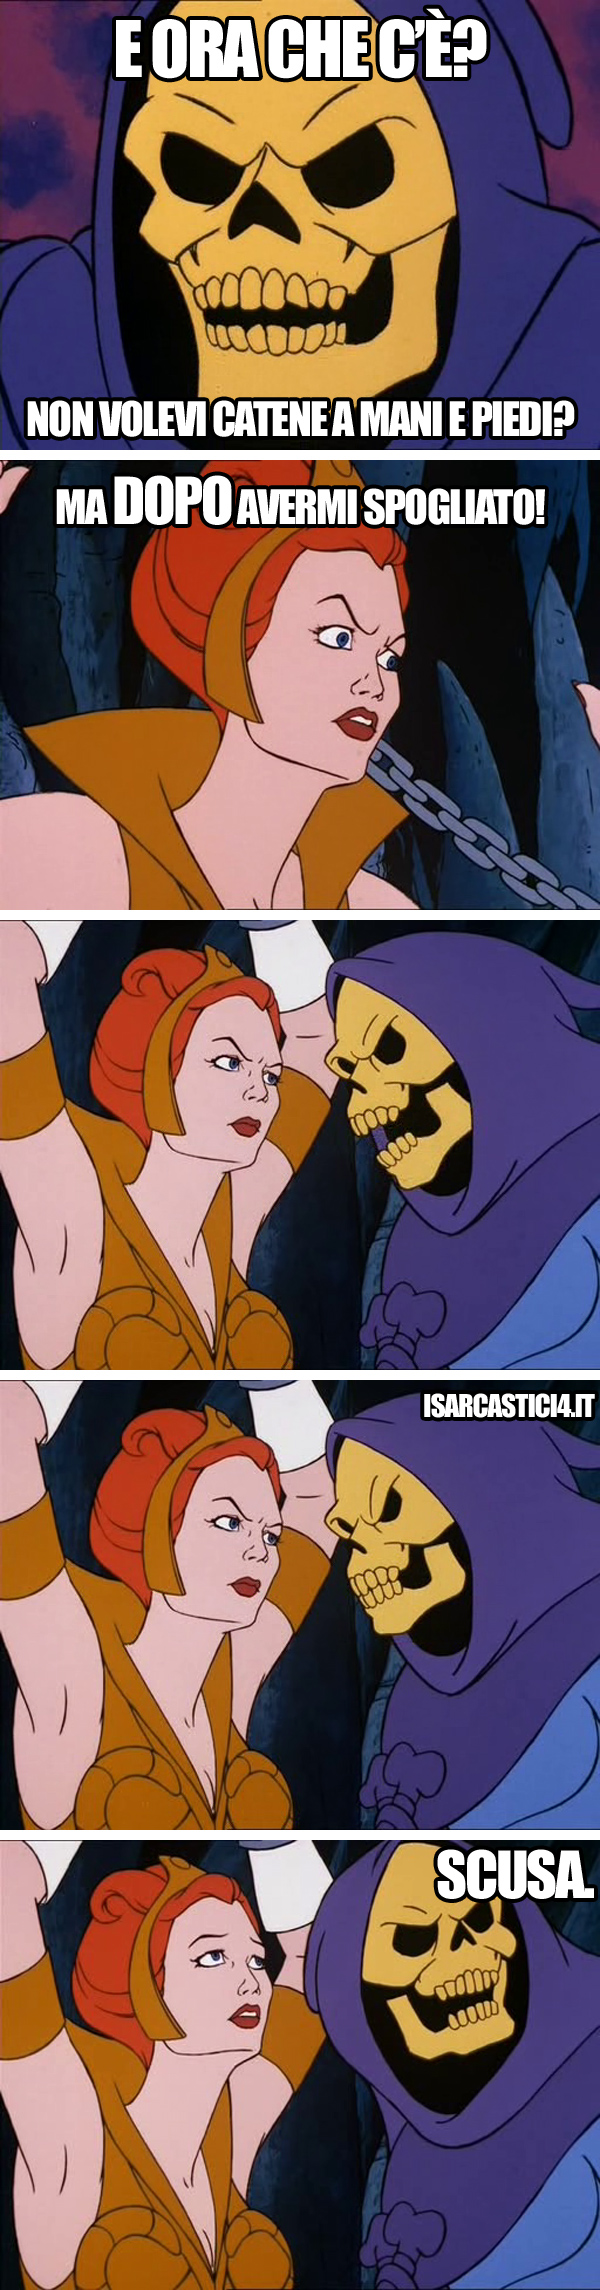 MOTU, Masters Of The Universe meme ita - Ordine